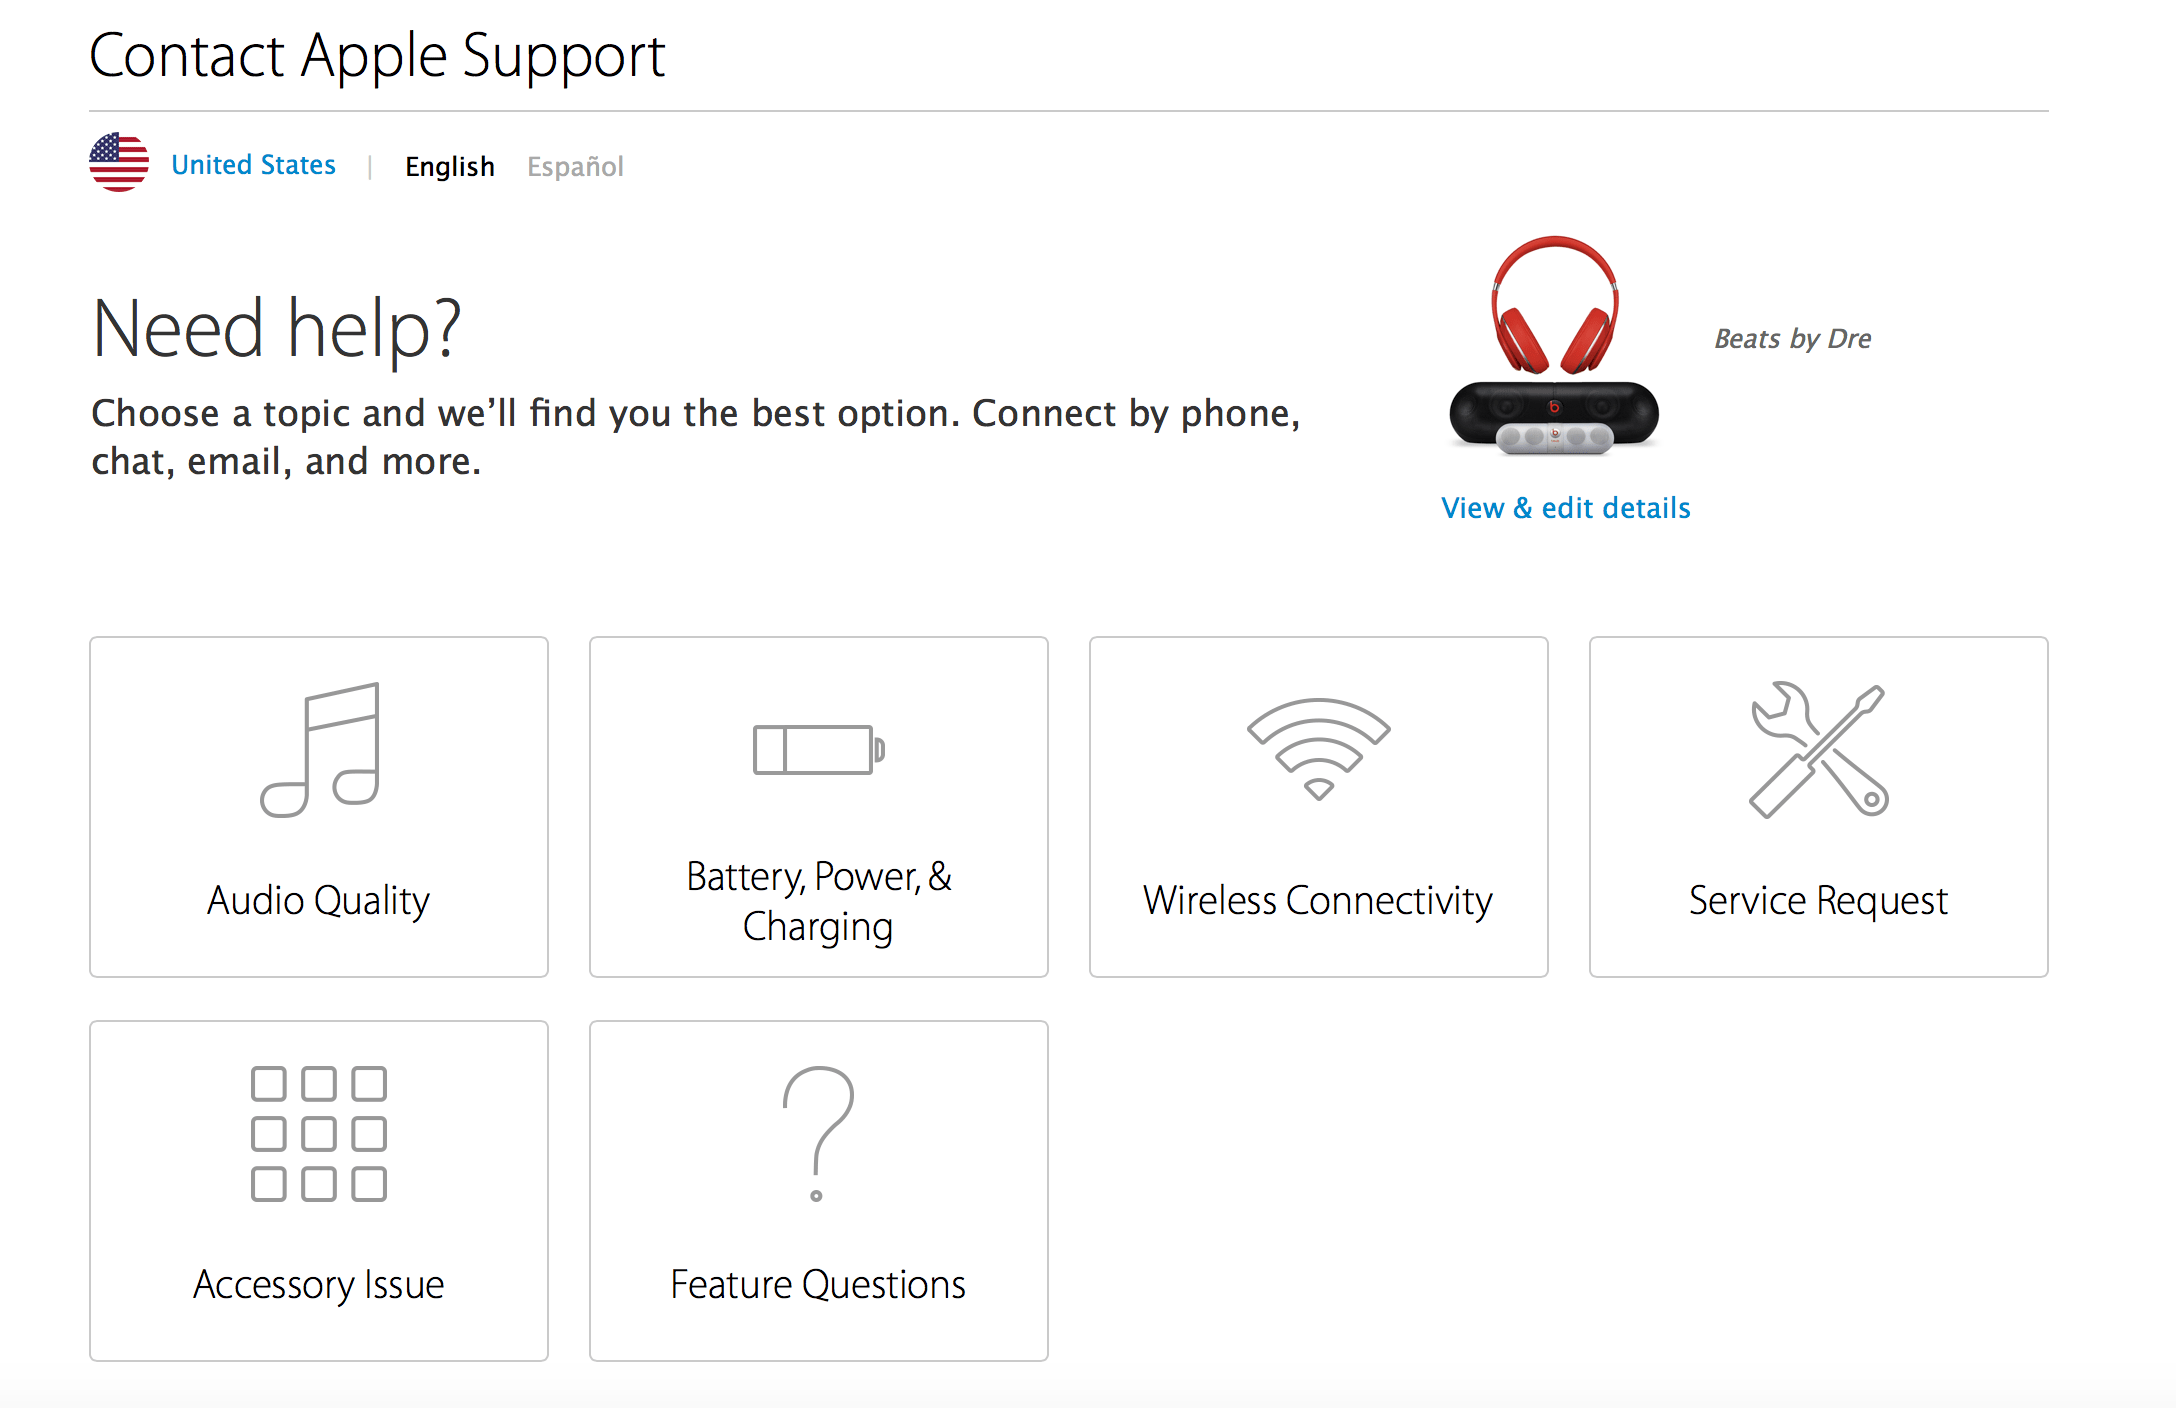 Apple To Begin Offering Web Based Chat Support For Beats